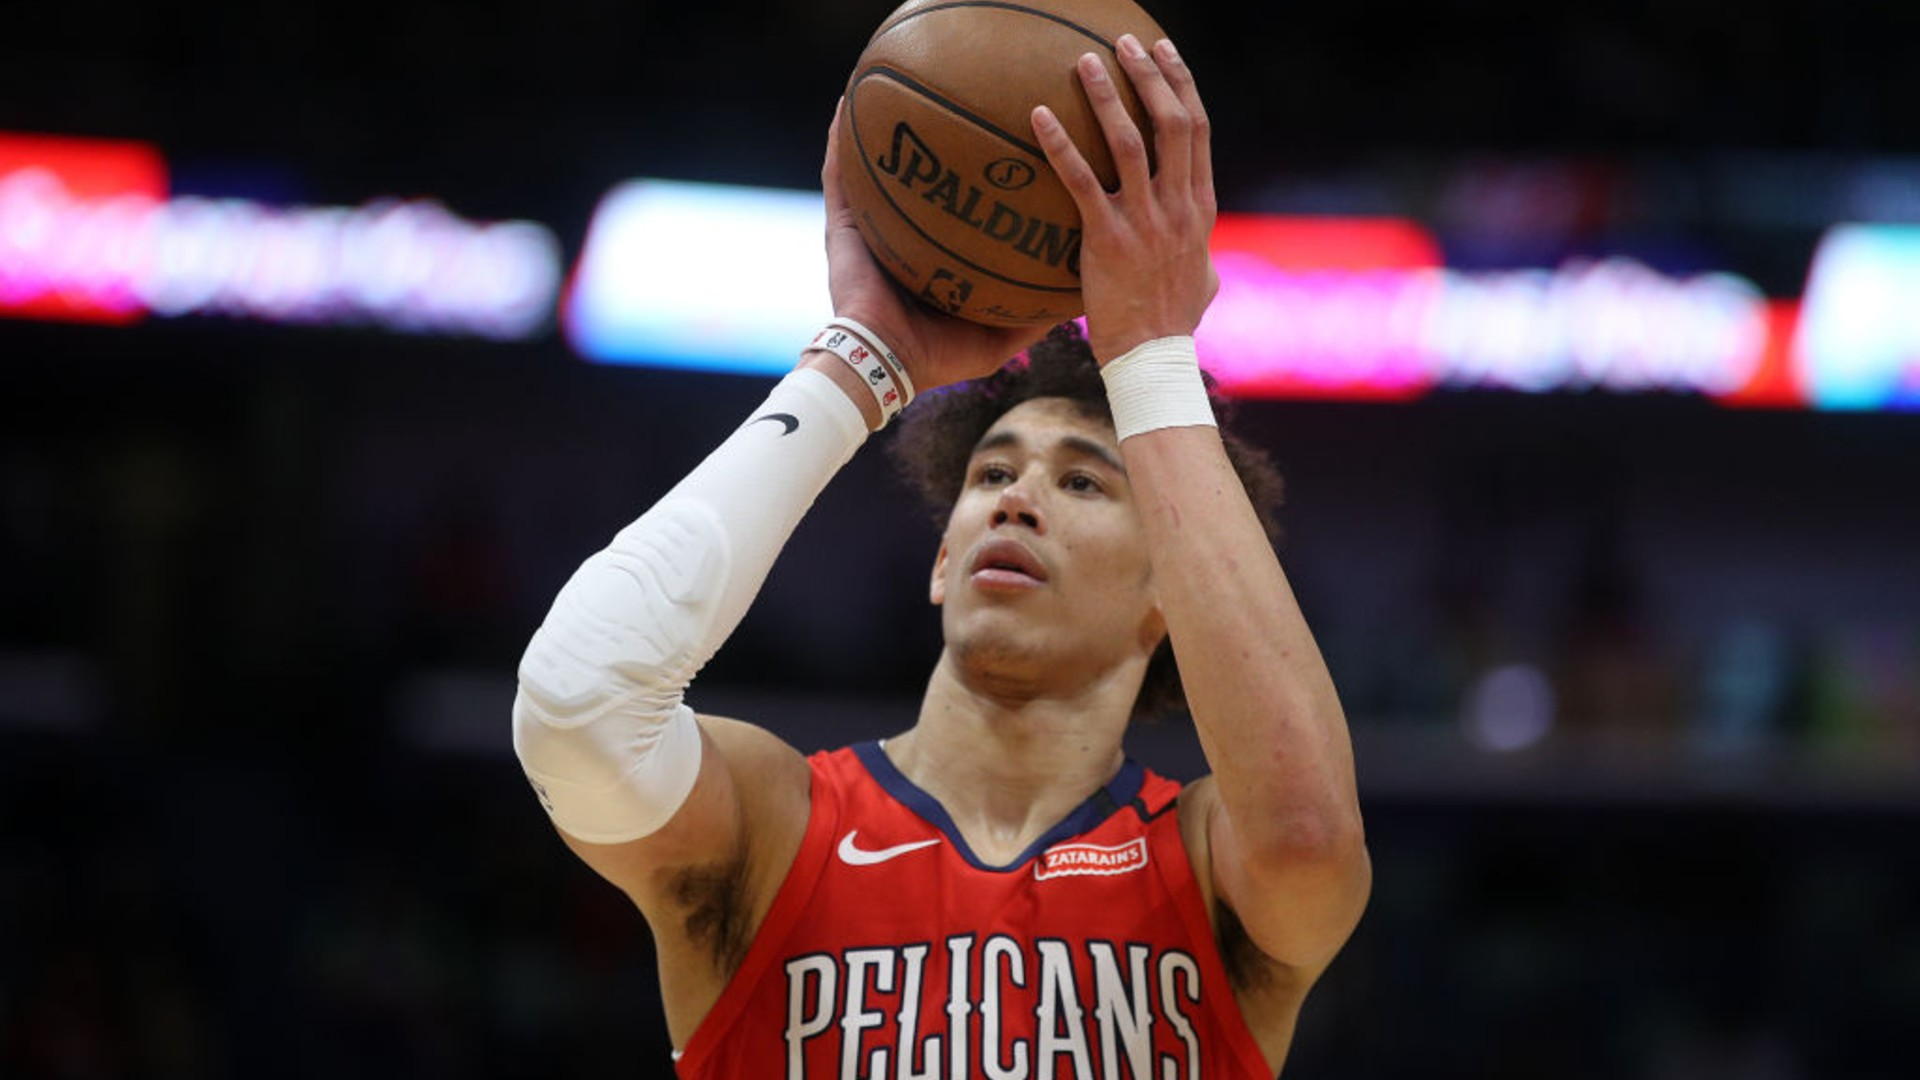 Jaxson Hayes of the New Orleans Pelicans shoots a free throw against the Utah Jazz at Smoothie King Center on January 16, 2020 in New Orleans, Louisiana. (Chris Graythen/Getty Images)